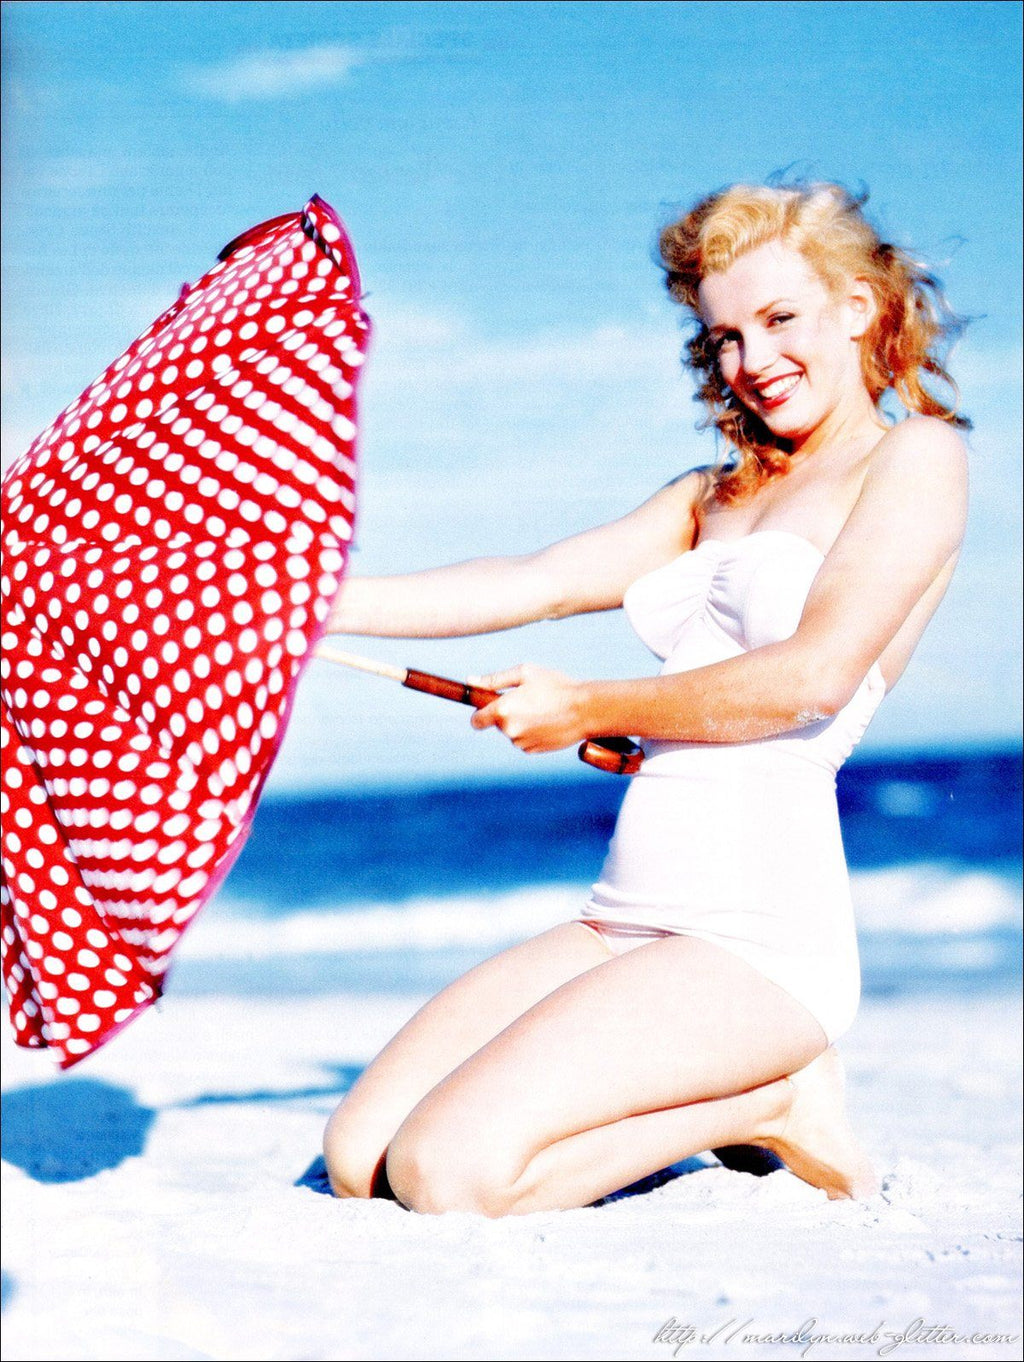 Marilyn at the Beach Diamond Painting Kit - The Diamond Painting Factory